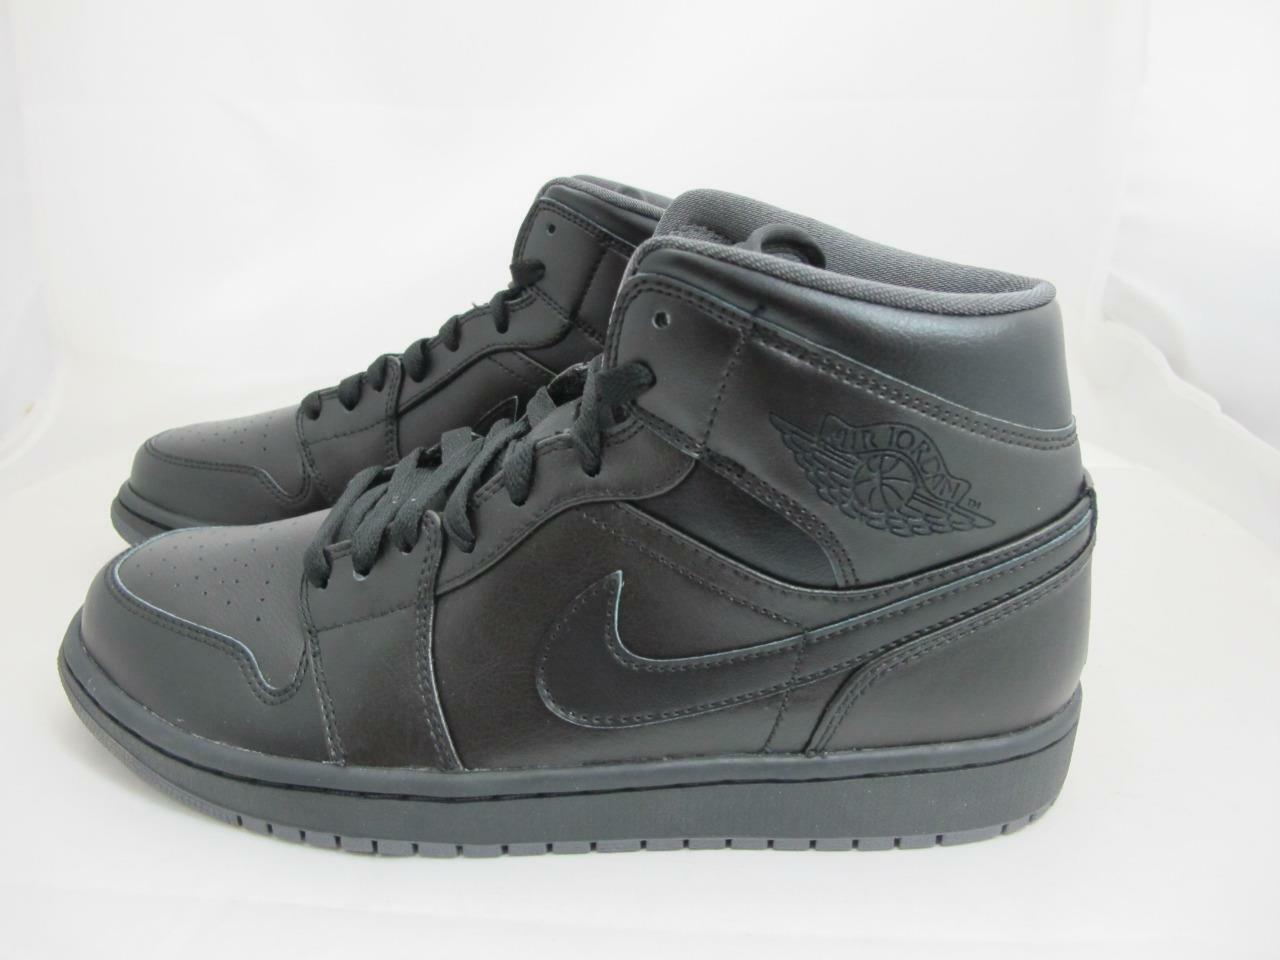 NEW homme NIKE AIR JORDAN 1 MID 554724-021